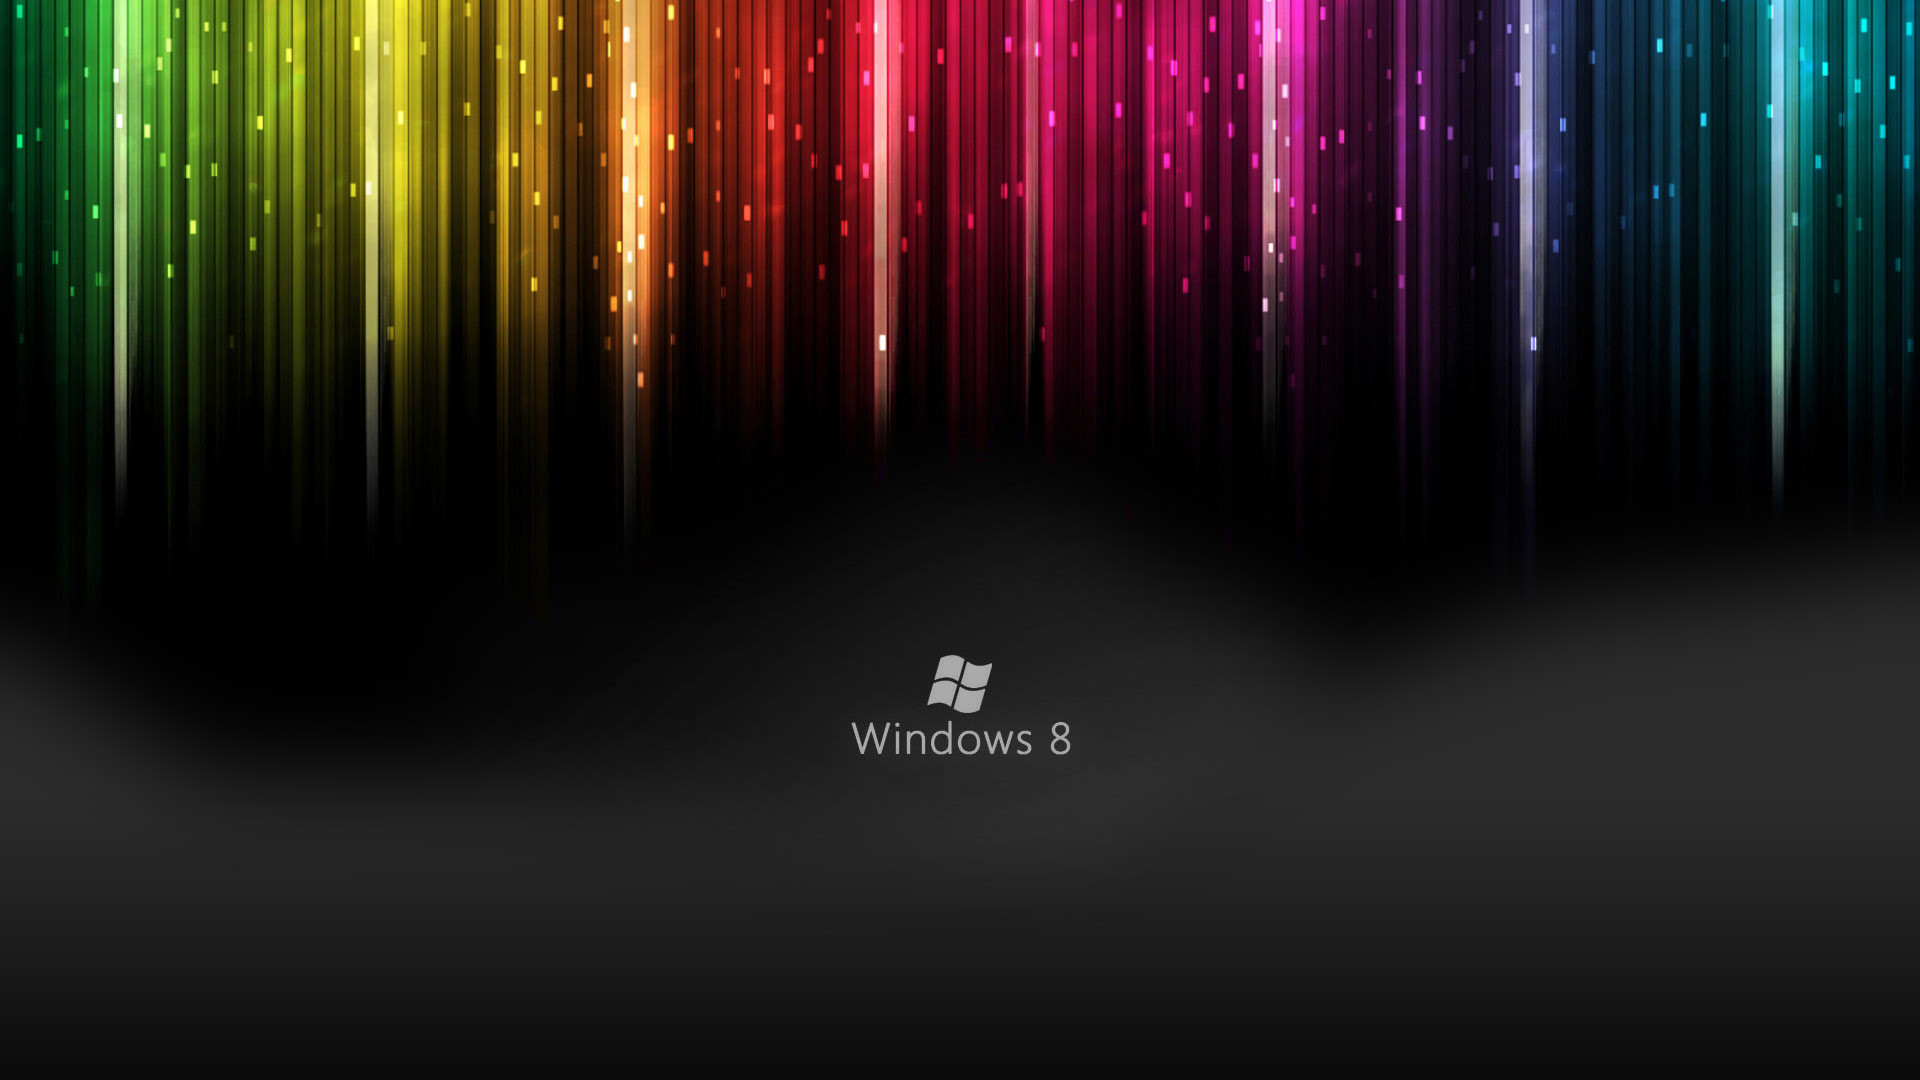 1920x1080 Windows-8-Live-Wallpapers-HD-Wallpaper.jpg